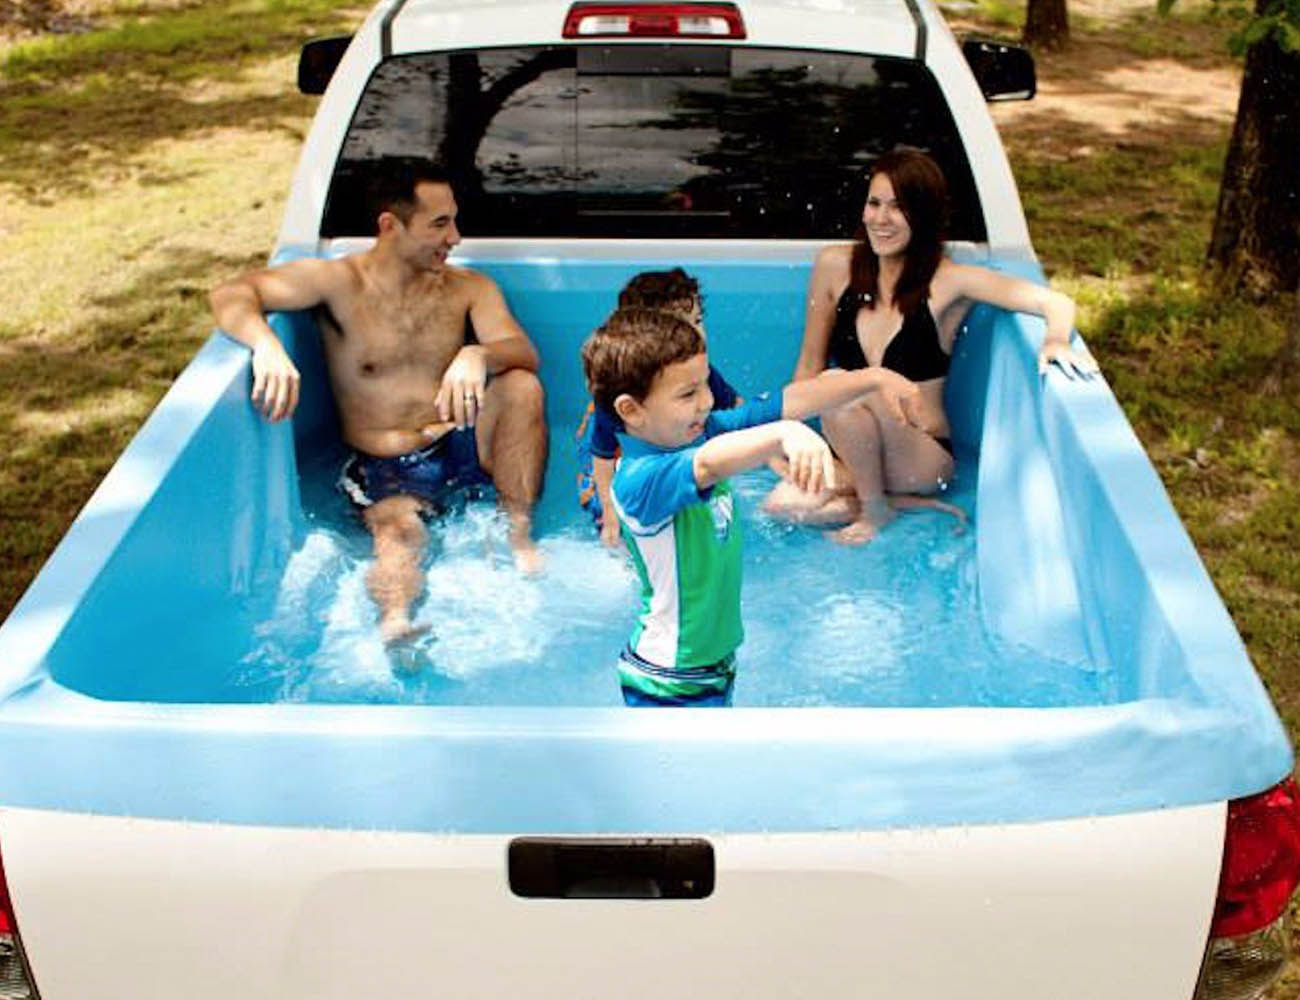 Pickup pools a truck bed swimming pool gadget flow How to make swimming pool water drinkable